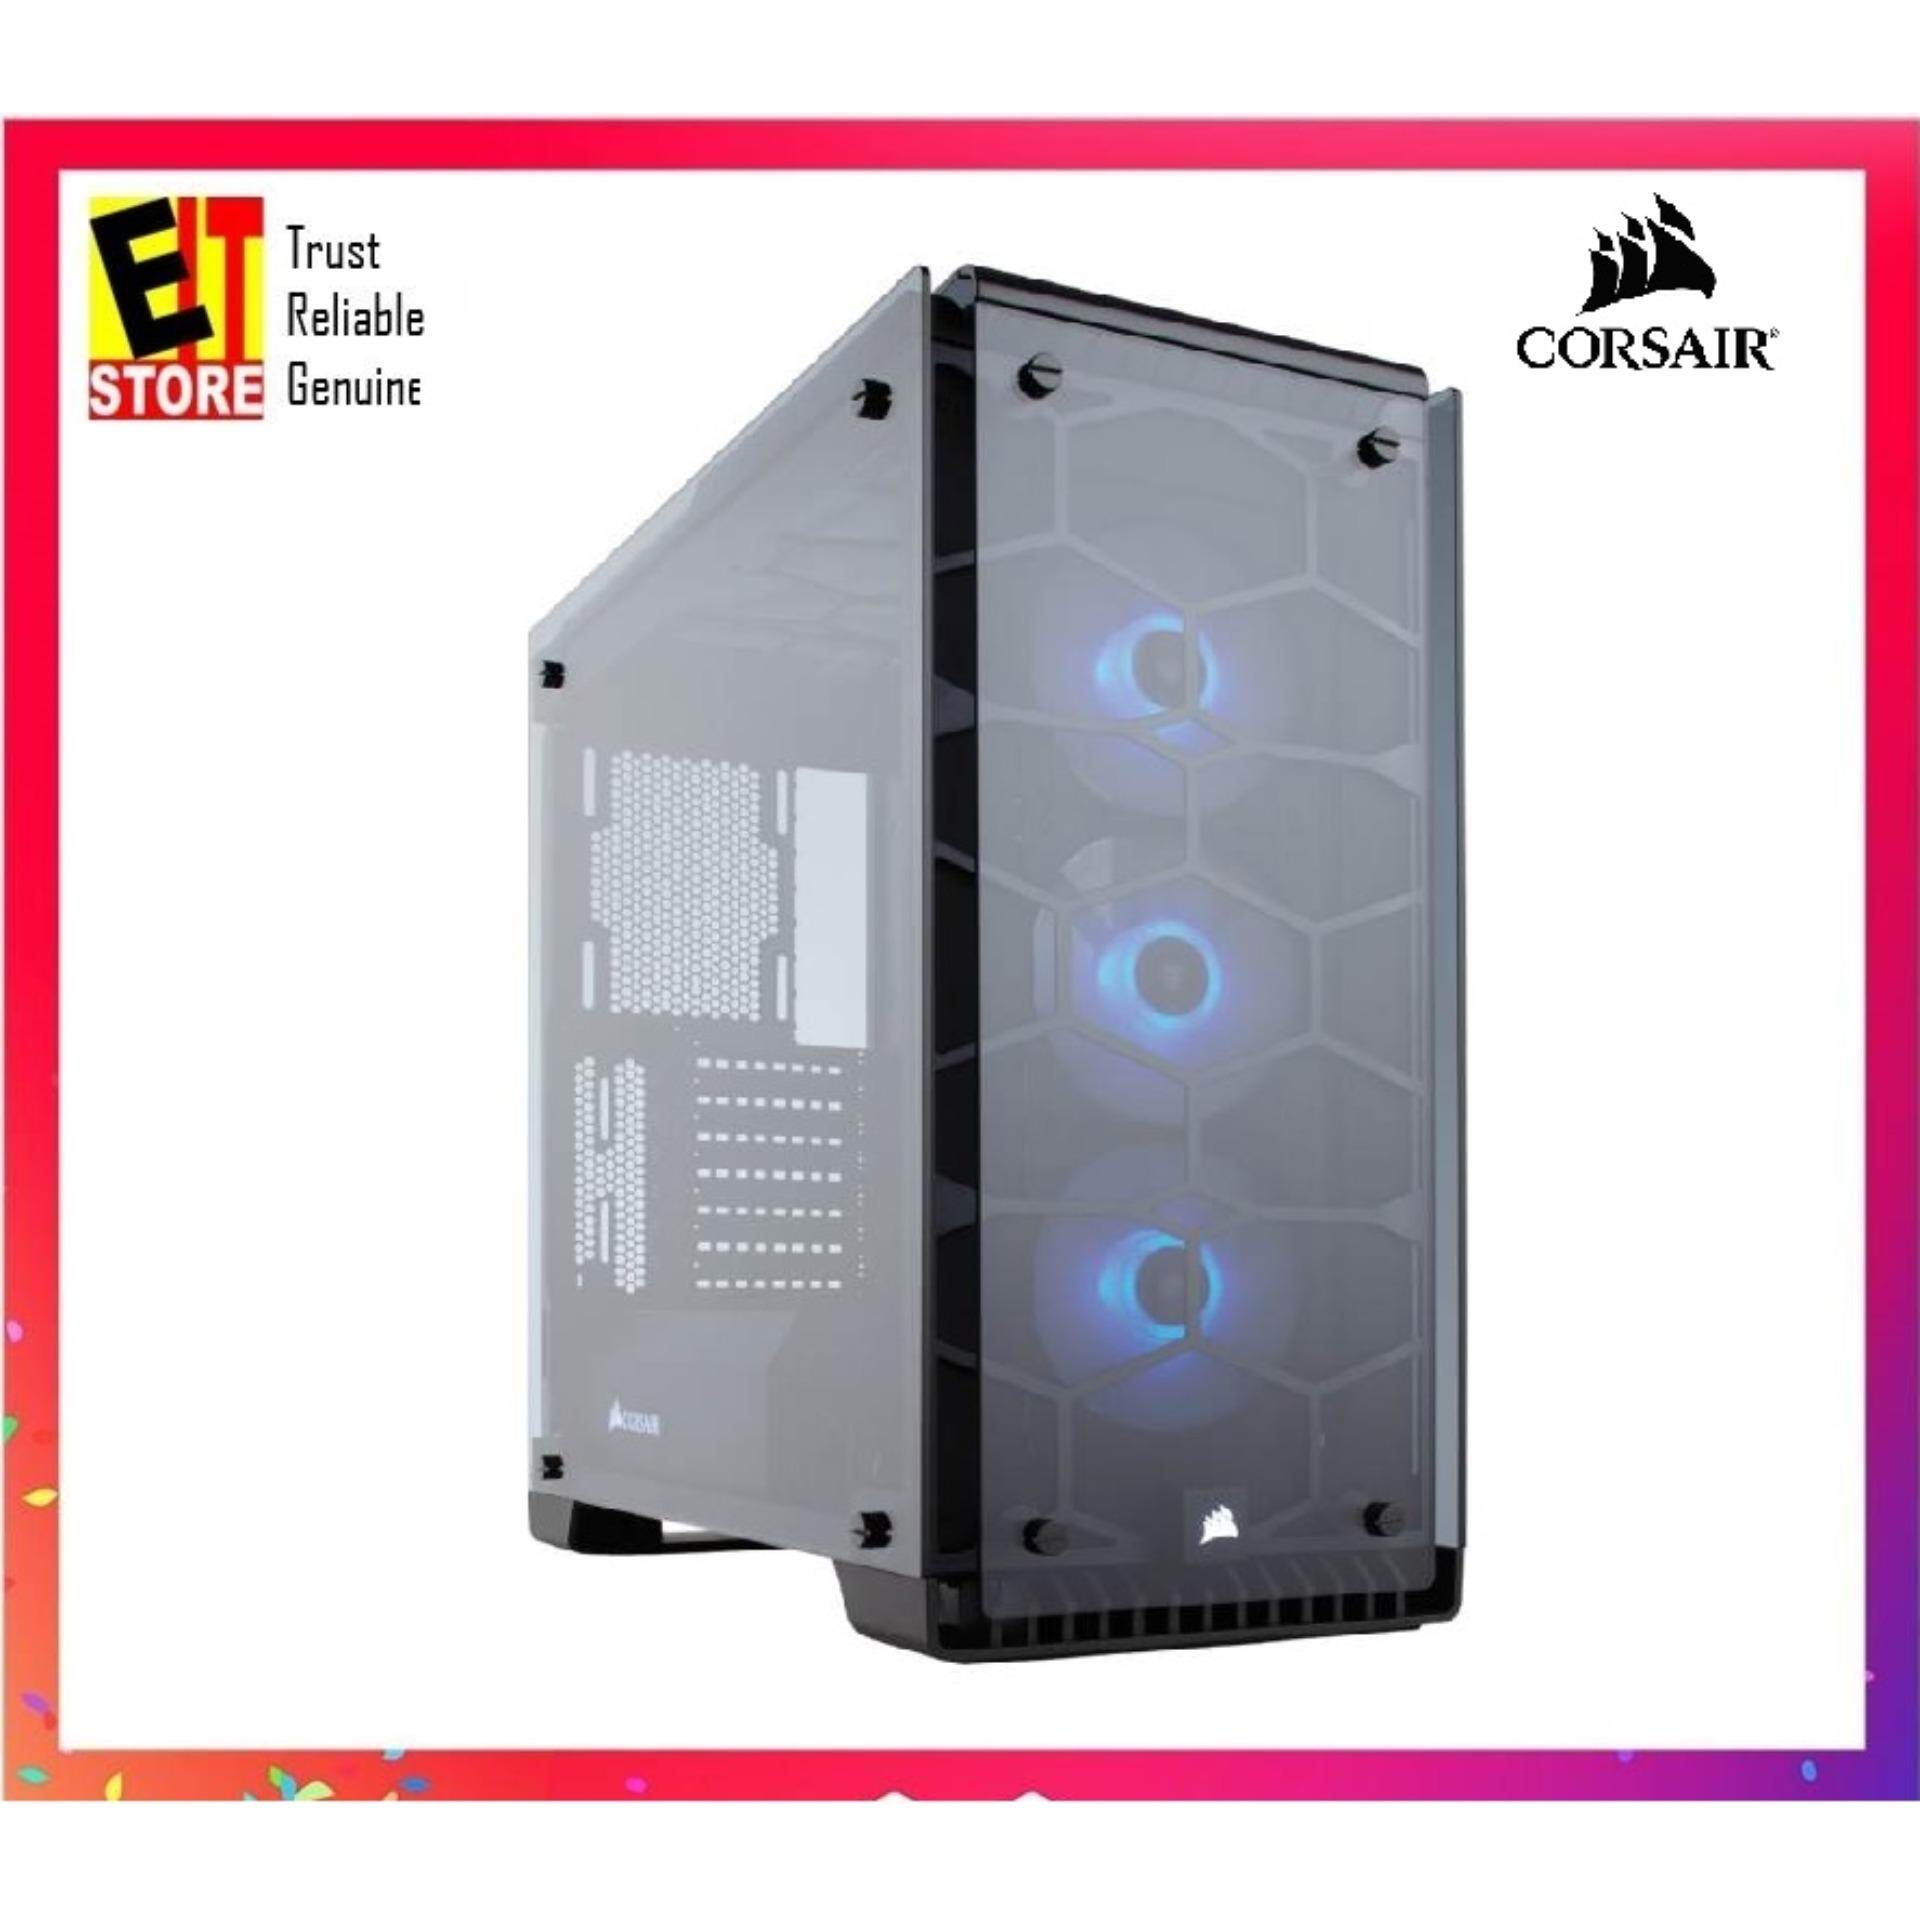 CORSAIR CRYSTAL 570X RGB MIRROR BLACK TEMPERED GLASS, PREMIUM ATX MID-TOWER CASE (CC-9011126-WW) Malaysia